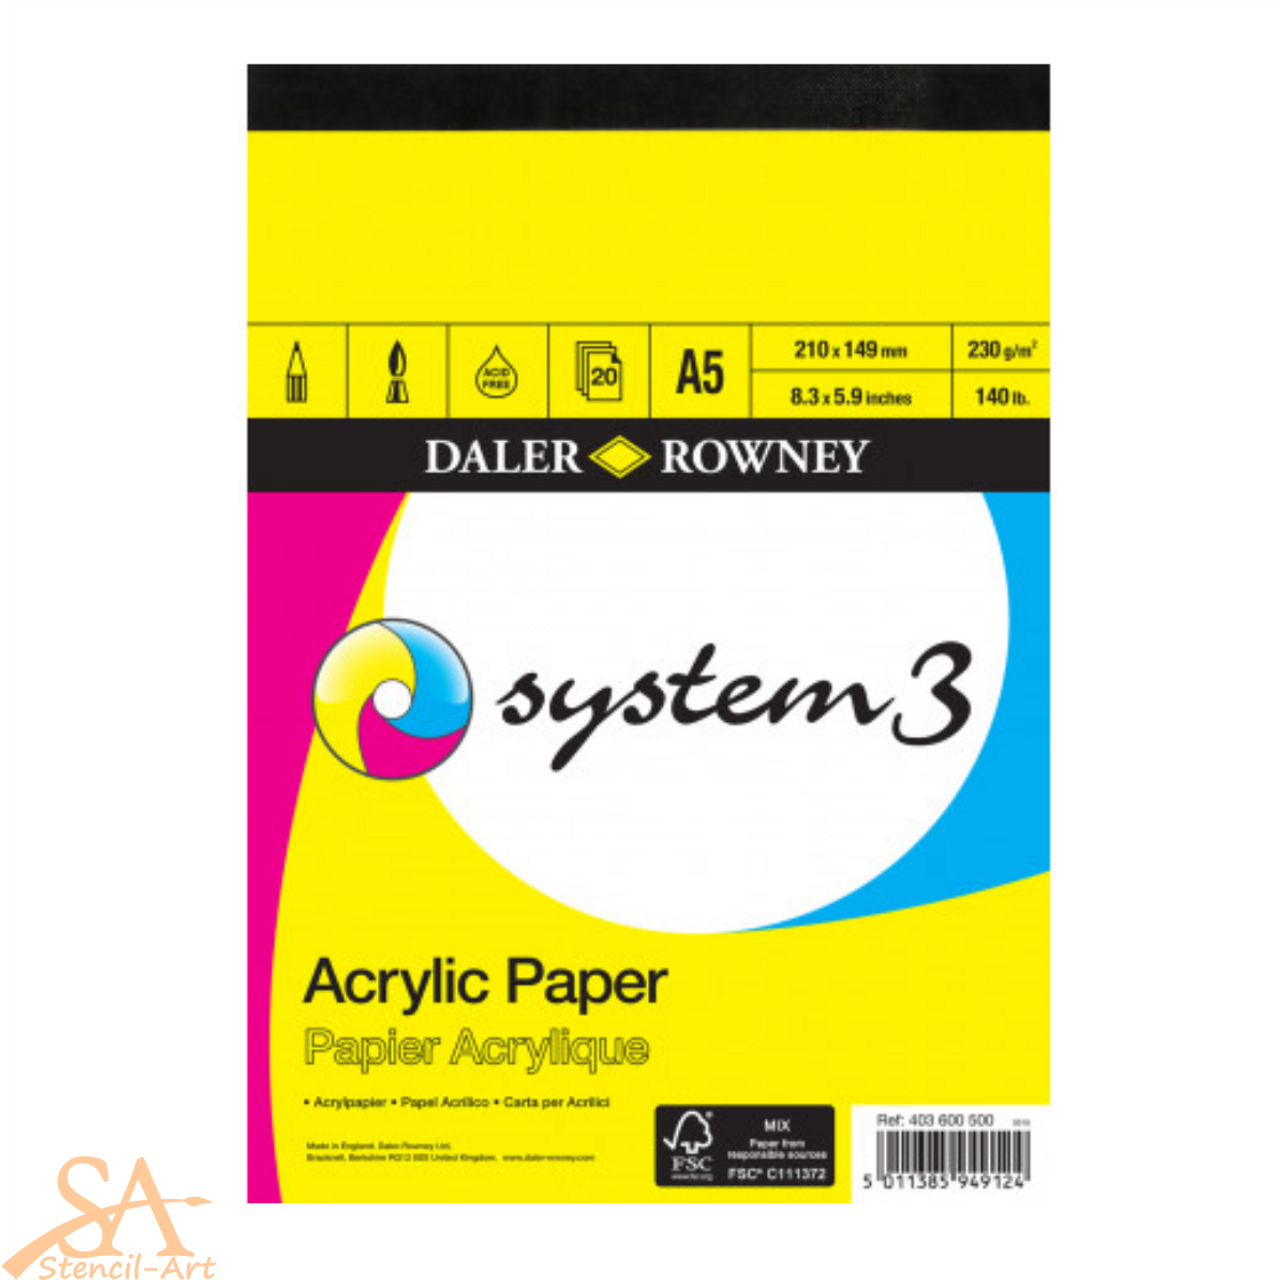 Daler-Rowney System 3 Acrylic Pad A5 - 20 sheets 230gsm